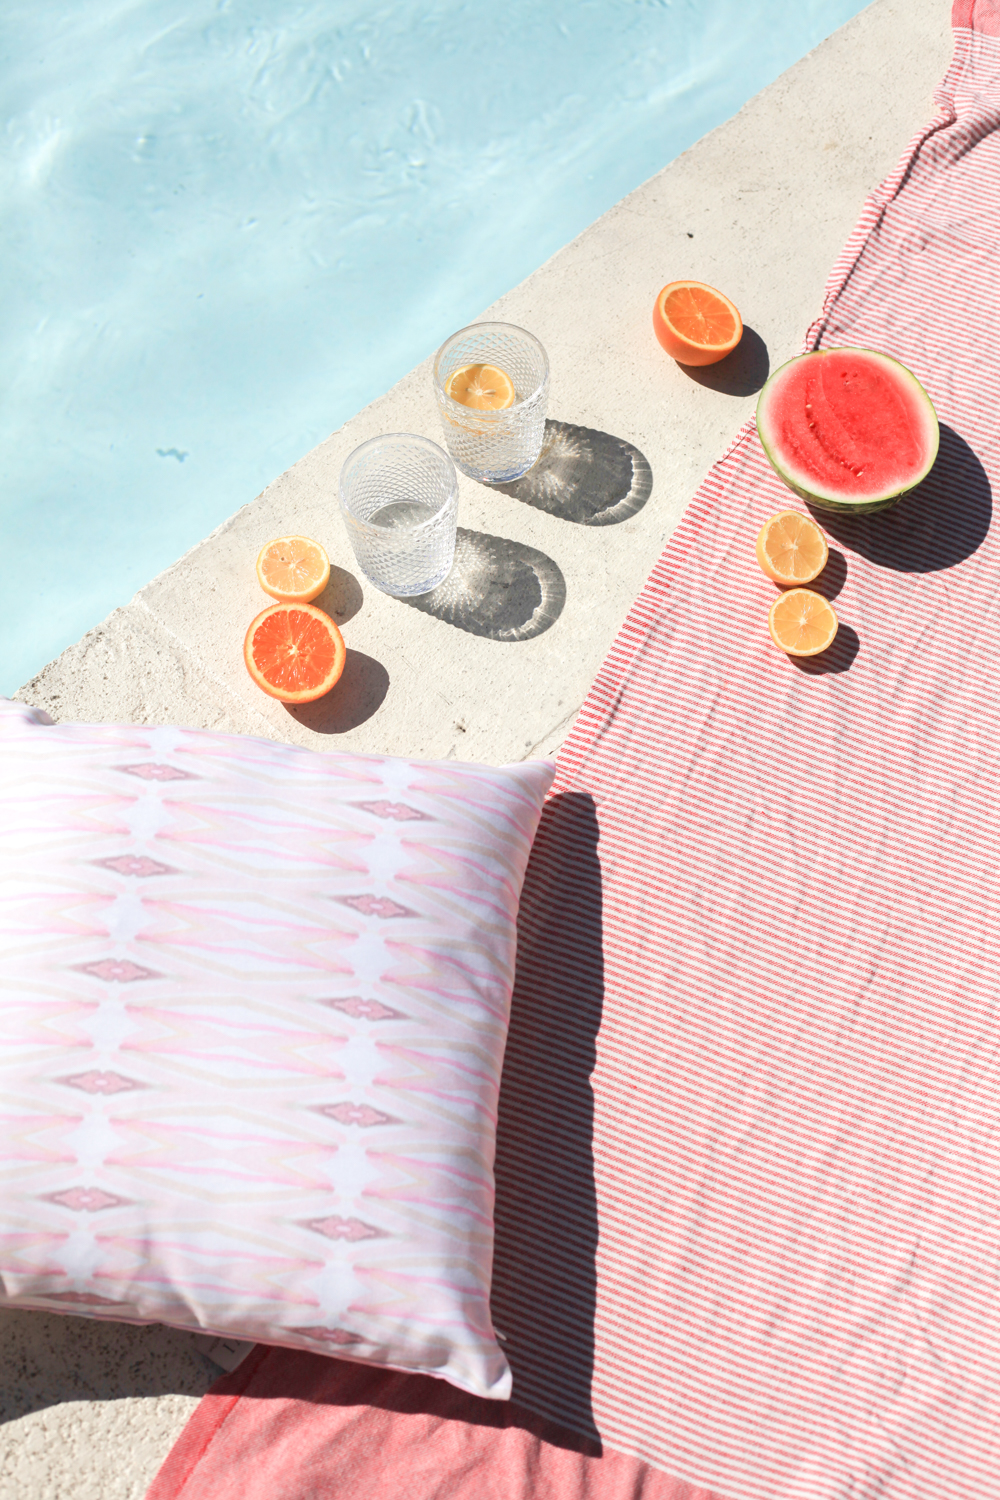 poolside collection.jpg